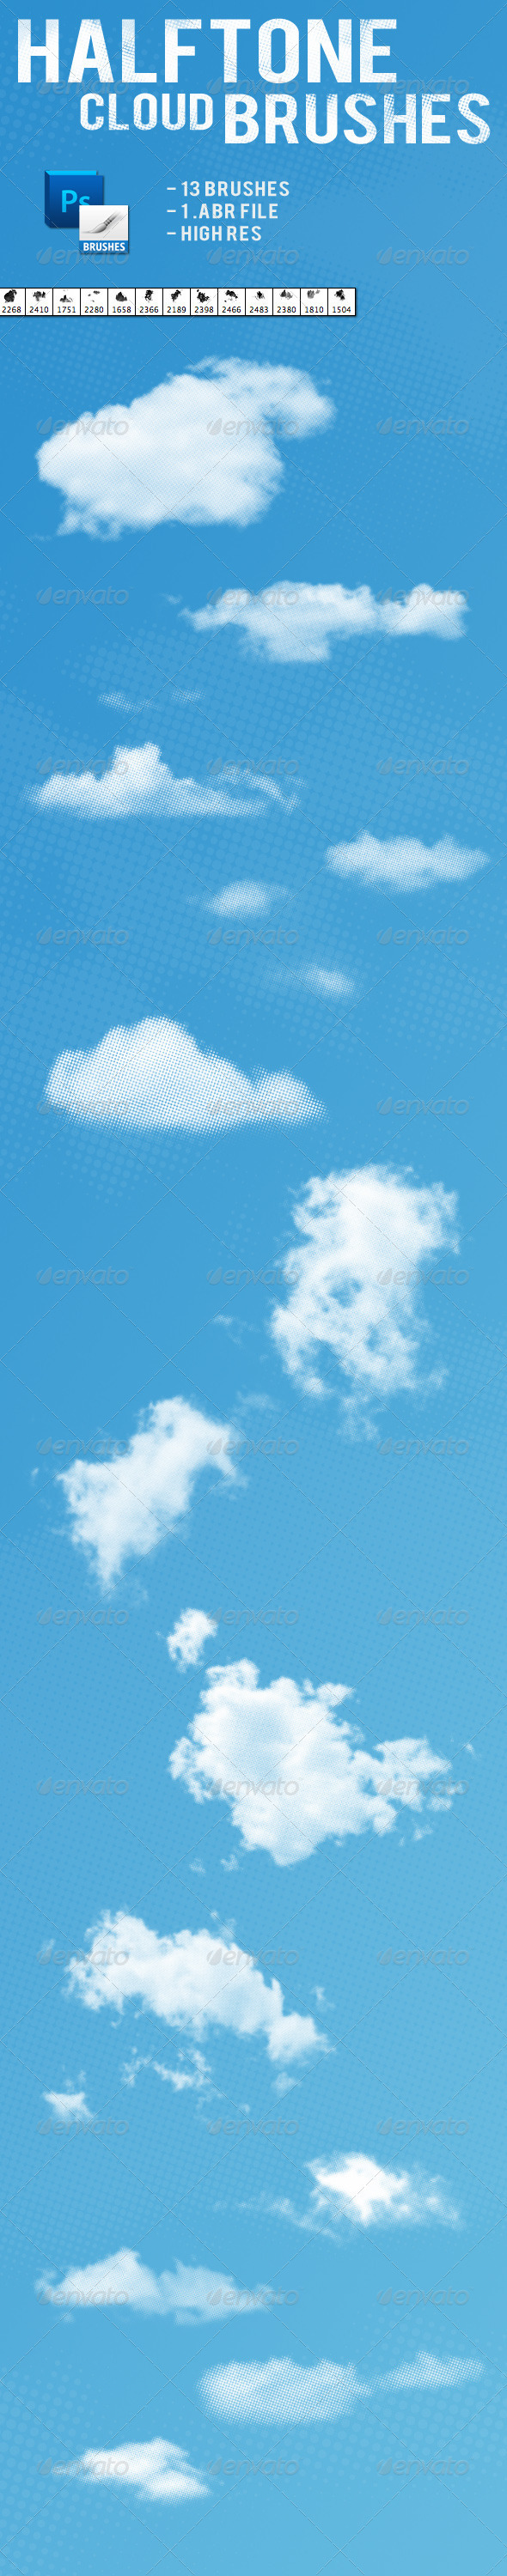 Halftone Cloud Brushes - Brushes Photoshop